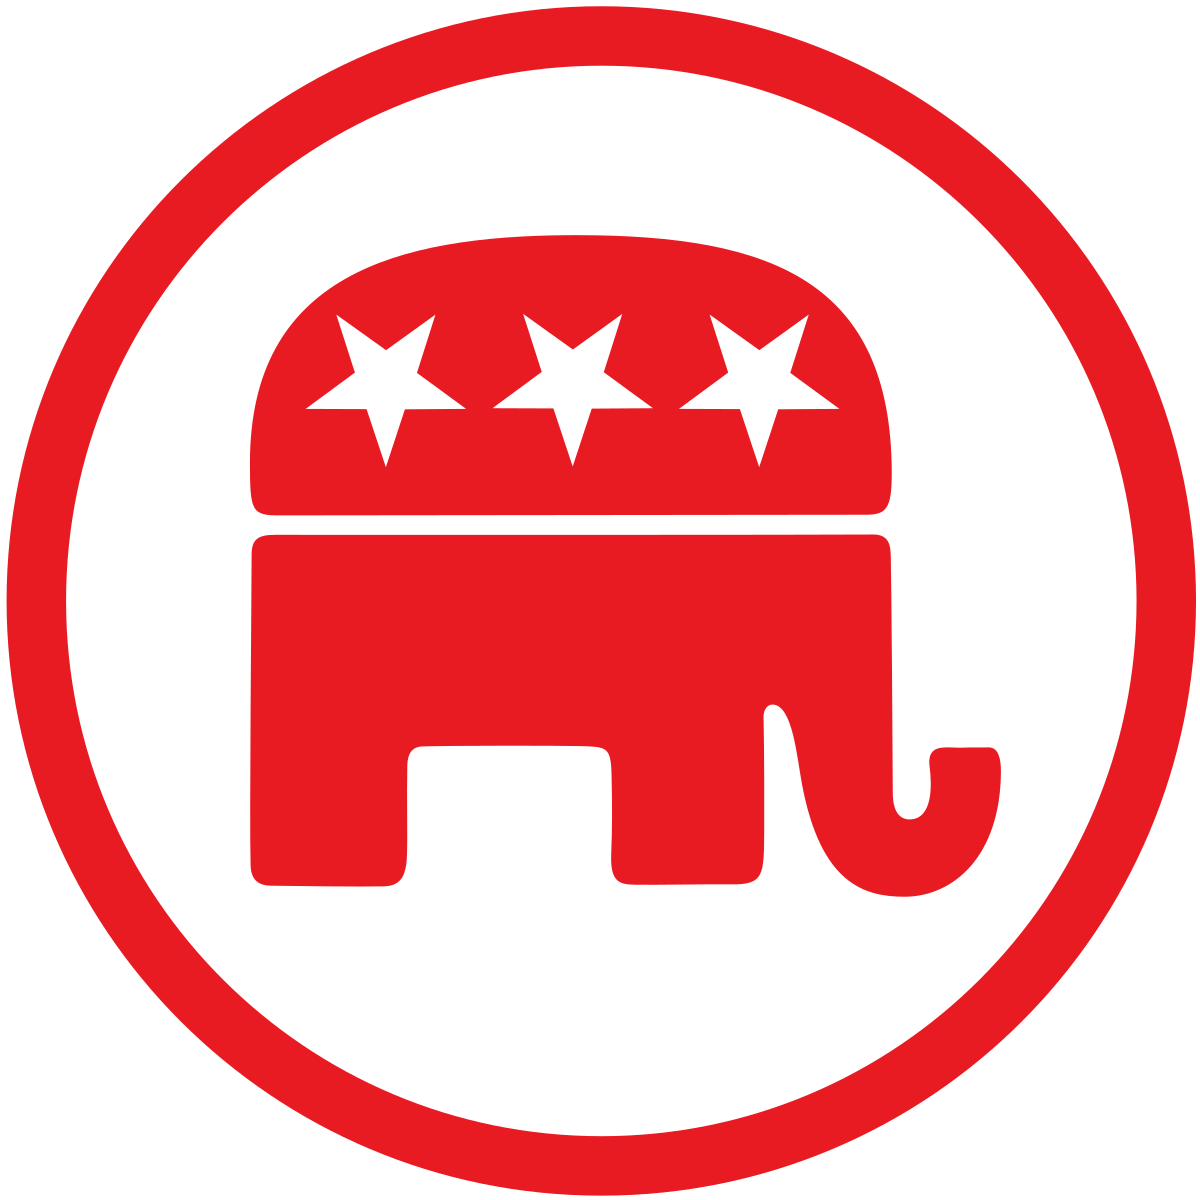 Republican Party (United States).